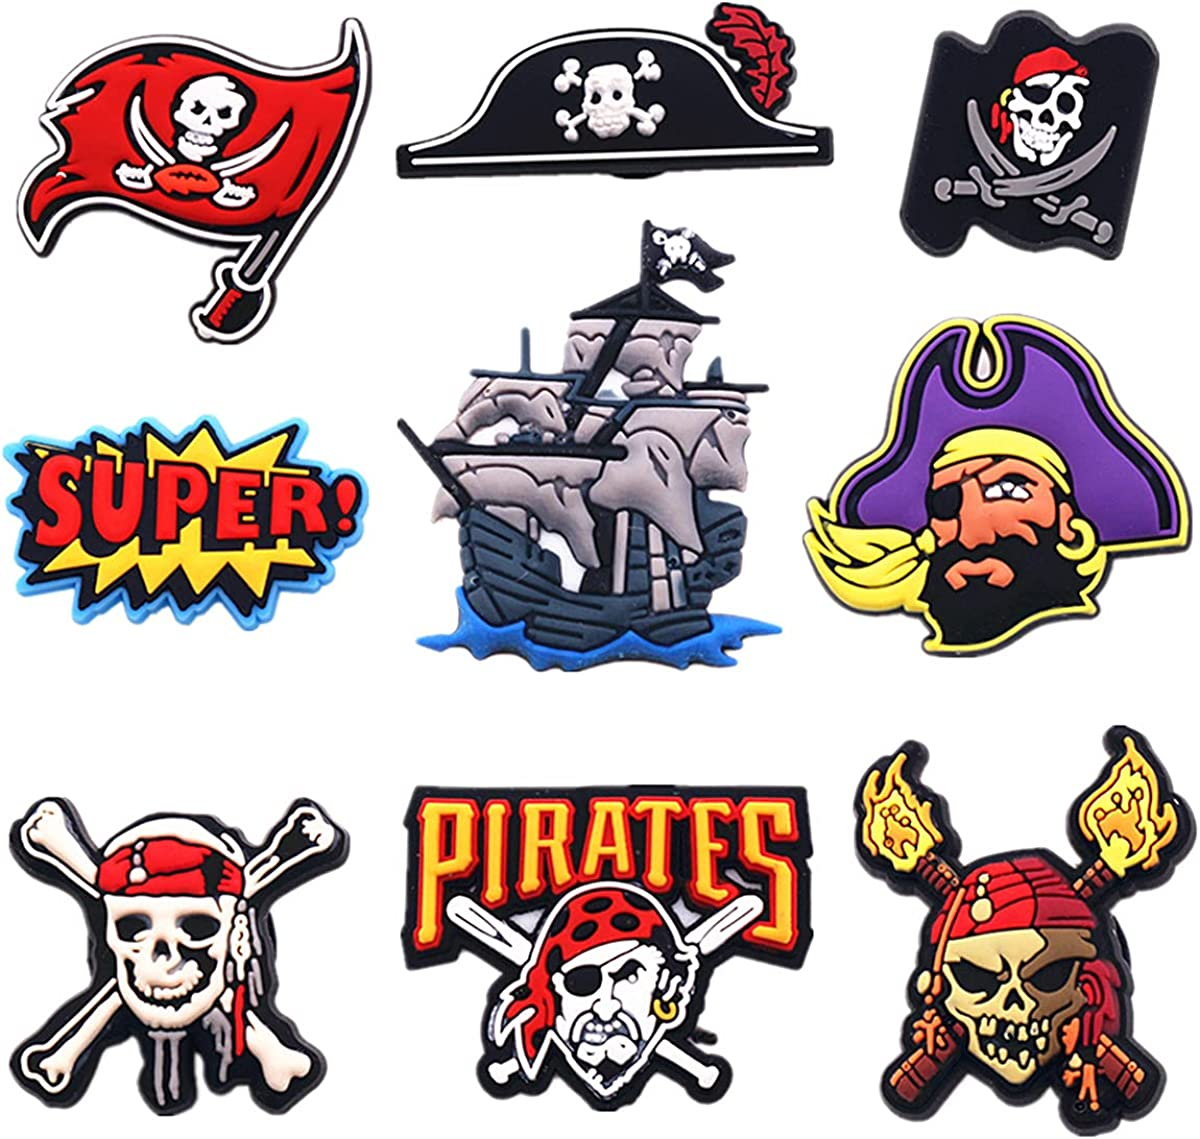 Auxury quality assurance 9pcs Shoe Charms Classic Pirate Flag Skull Ship Accessories